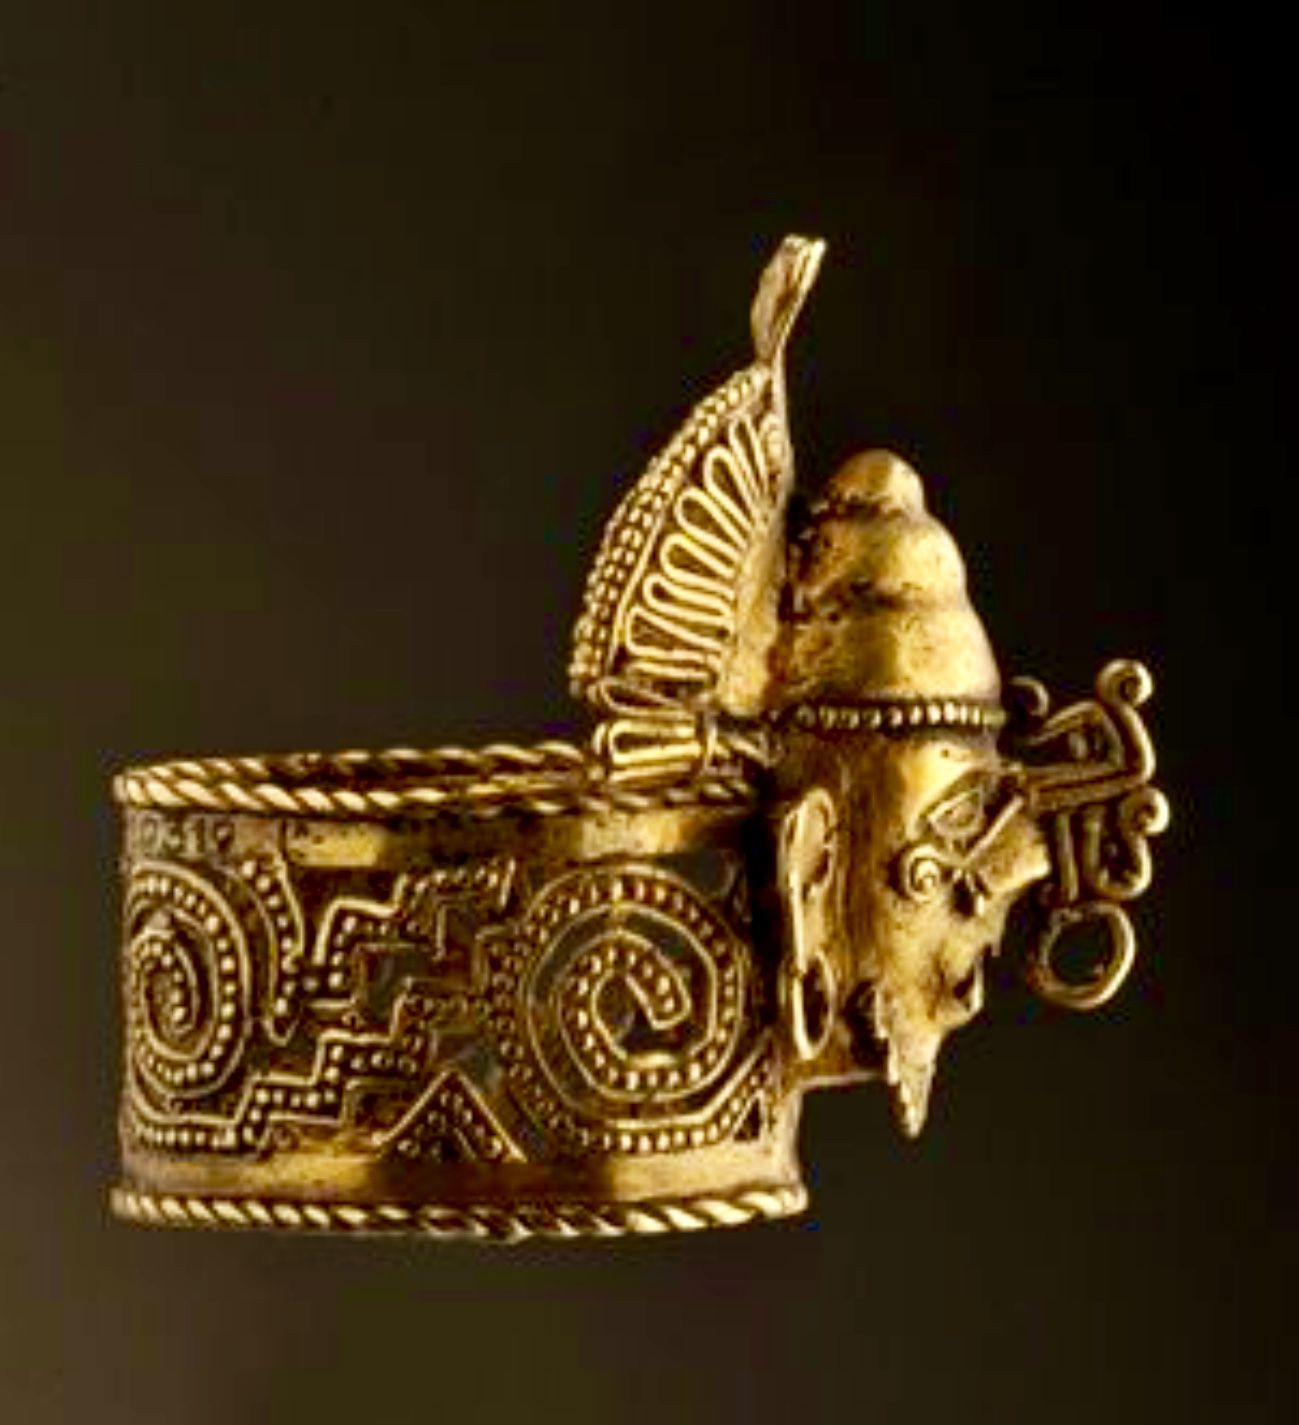 Aztec gold ring from the tomb of Ahuizotl J Pinterest